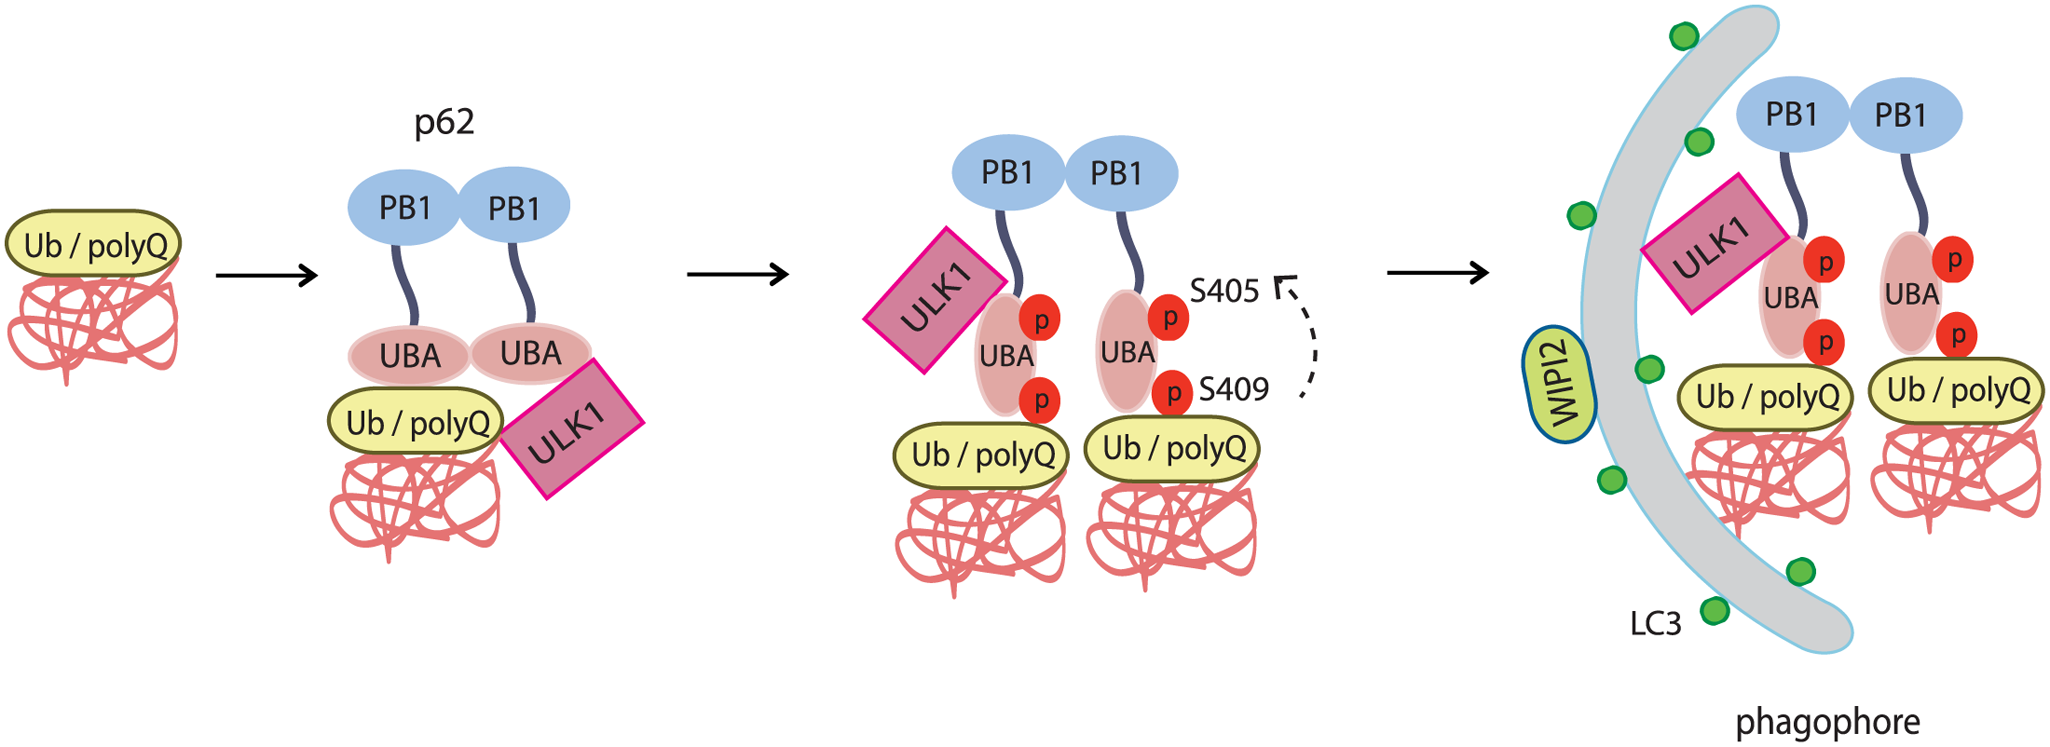 The working model for ULK1-mediated p-S409 and p-S405 of p62 in selective degradation of ubiquitinated proteins and polyglutamine-expanded proteins.